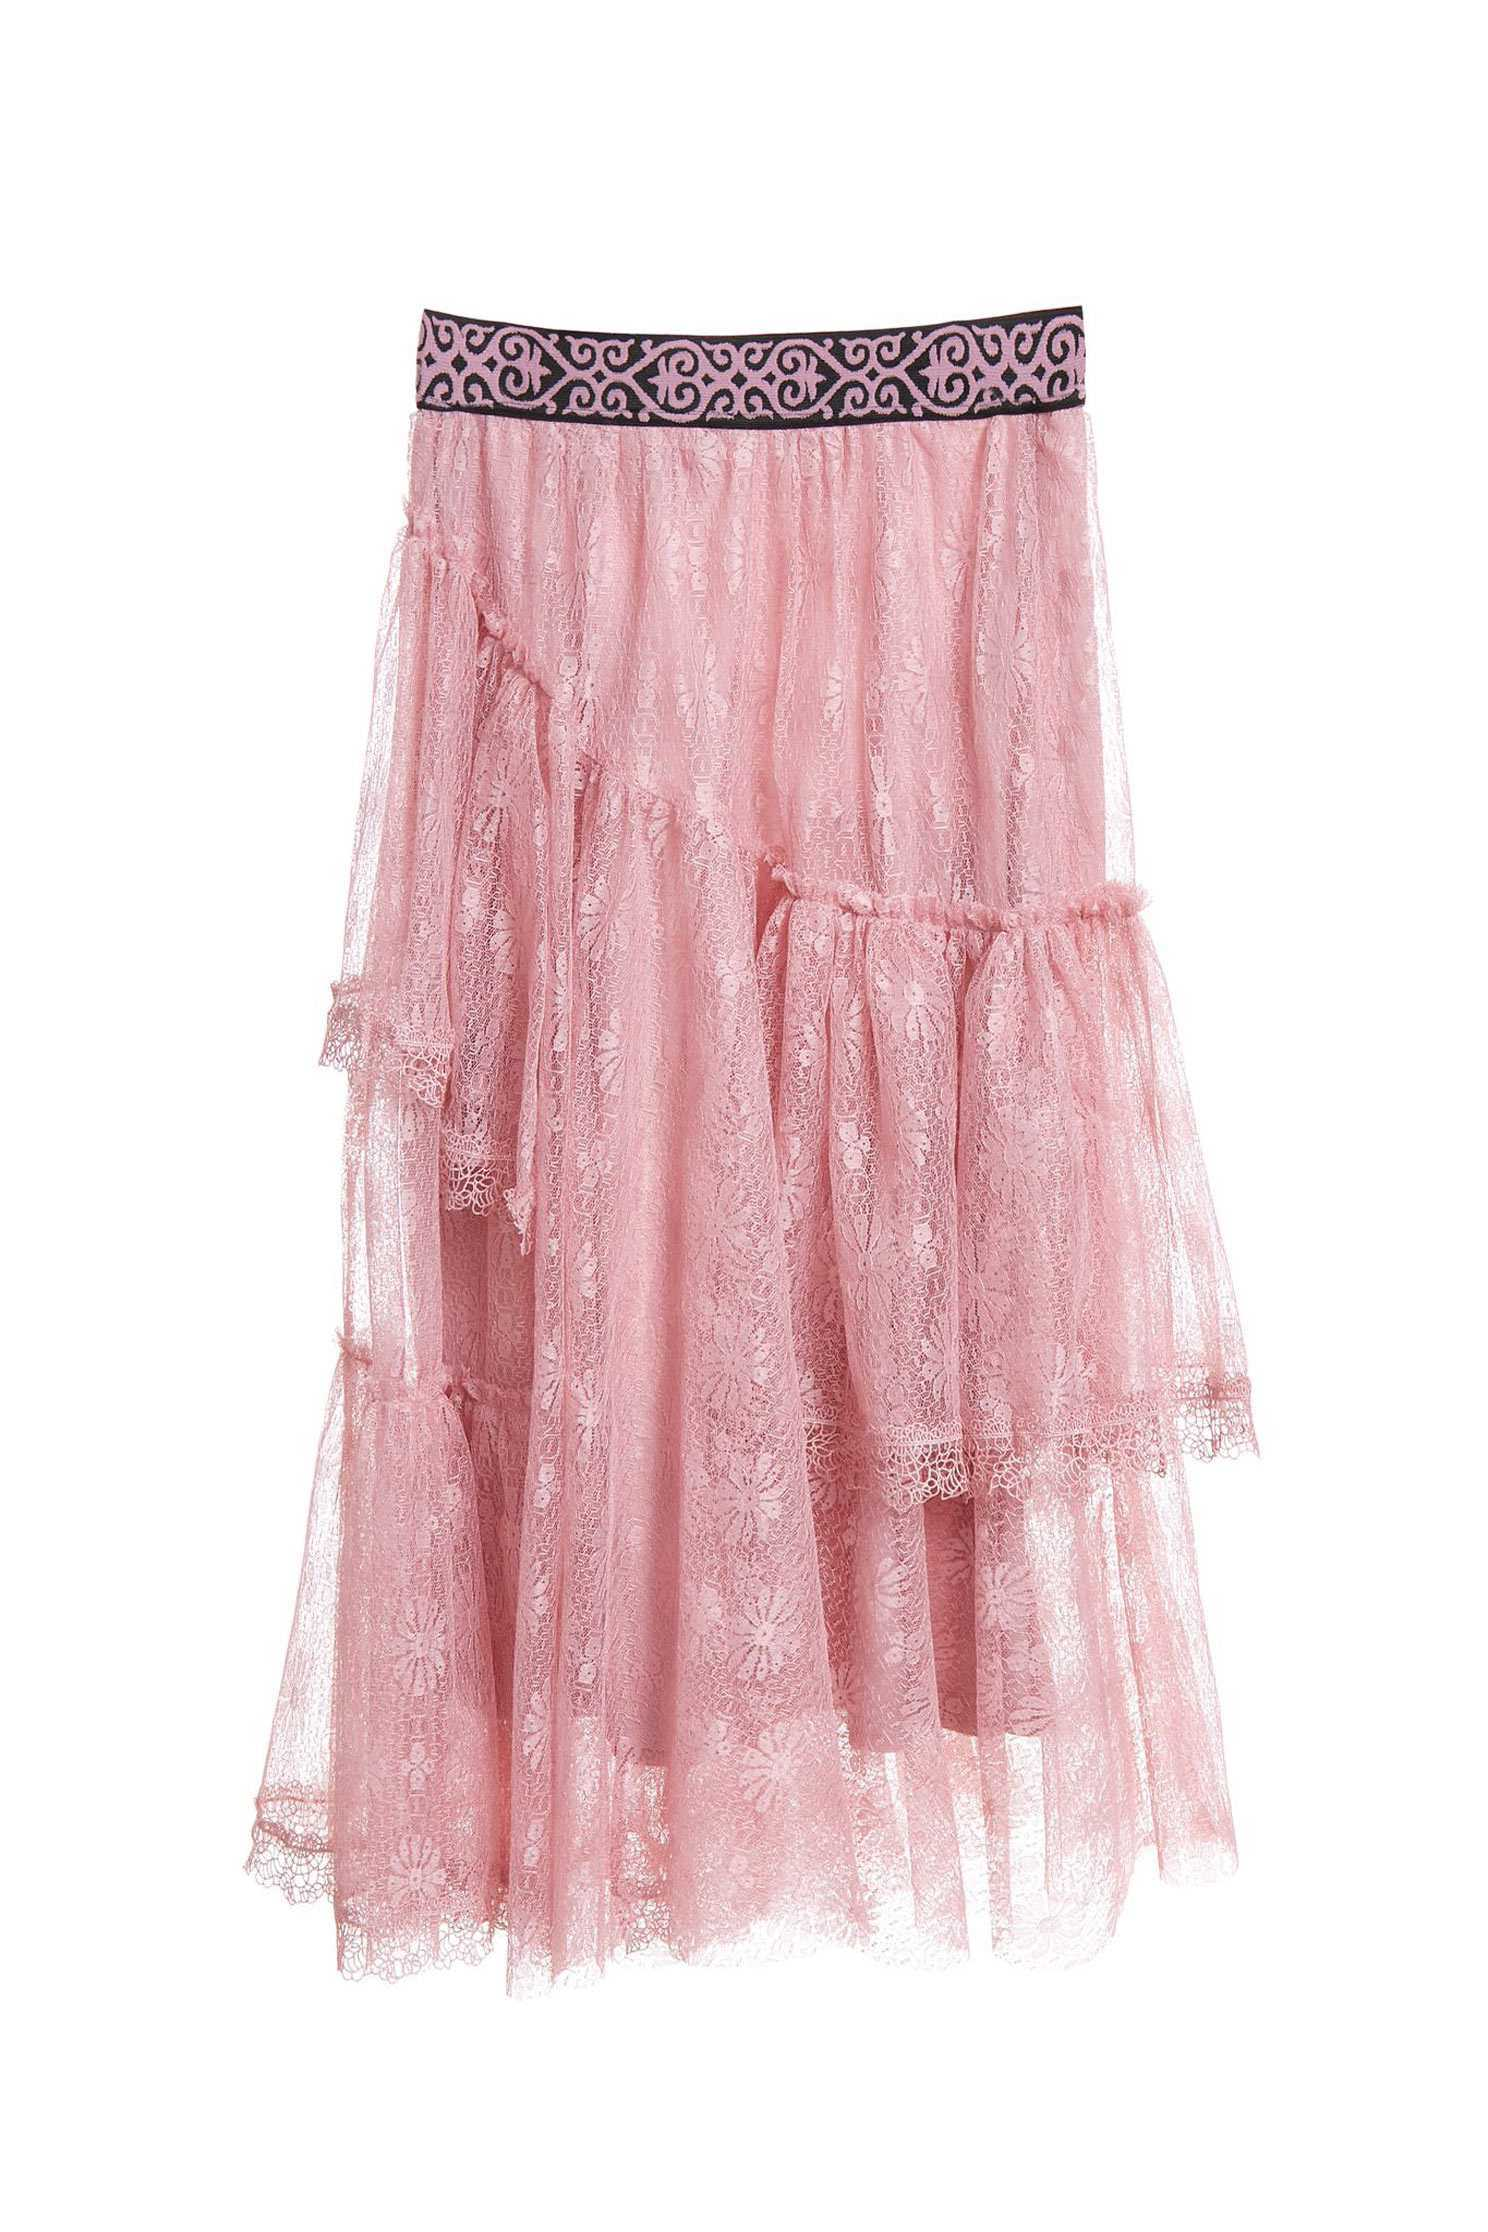 Dry rose lace skirt